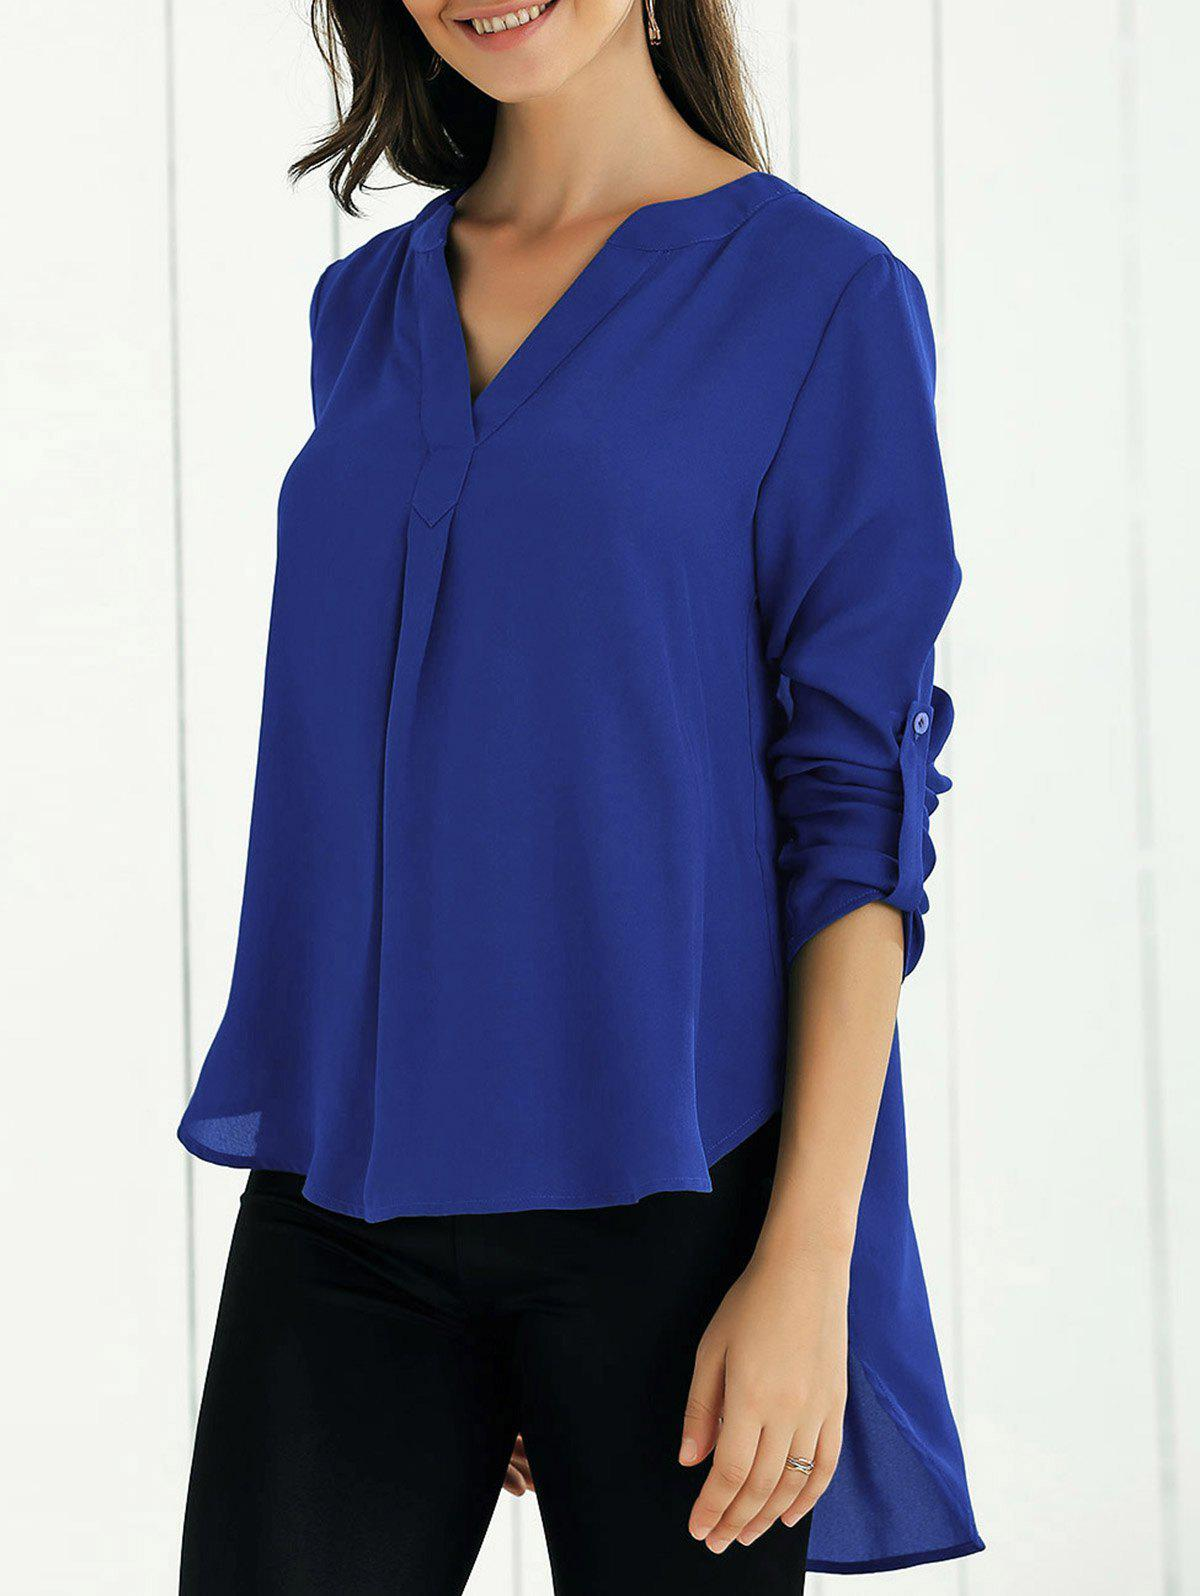 V Neck High-Low BlouseWOMEN<br><br>Size: XL; Color: SAPPHIRE BLUE; Style: Fashion; Material: Polyester; Shirt Length: Long; Sleeve Length: Full; Collar: V-Neck; Pattern Type: Solid; Season: Fall,Spring,Summer; Weight: 0.3200kg; Package Contents: 1 x Blouse;